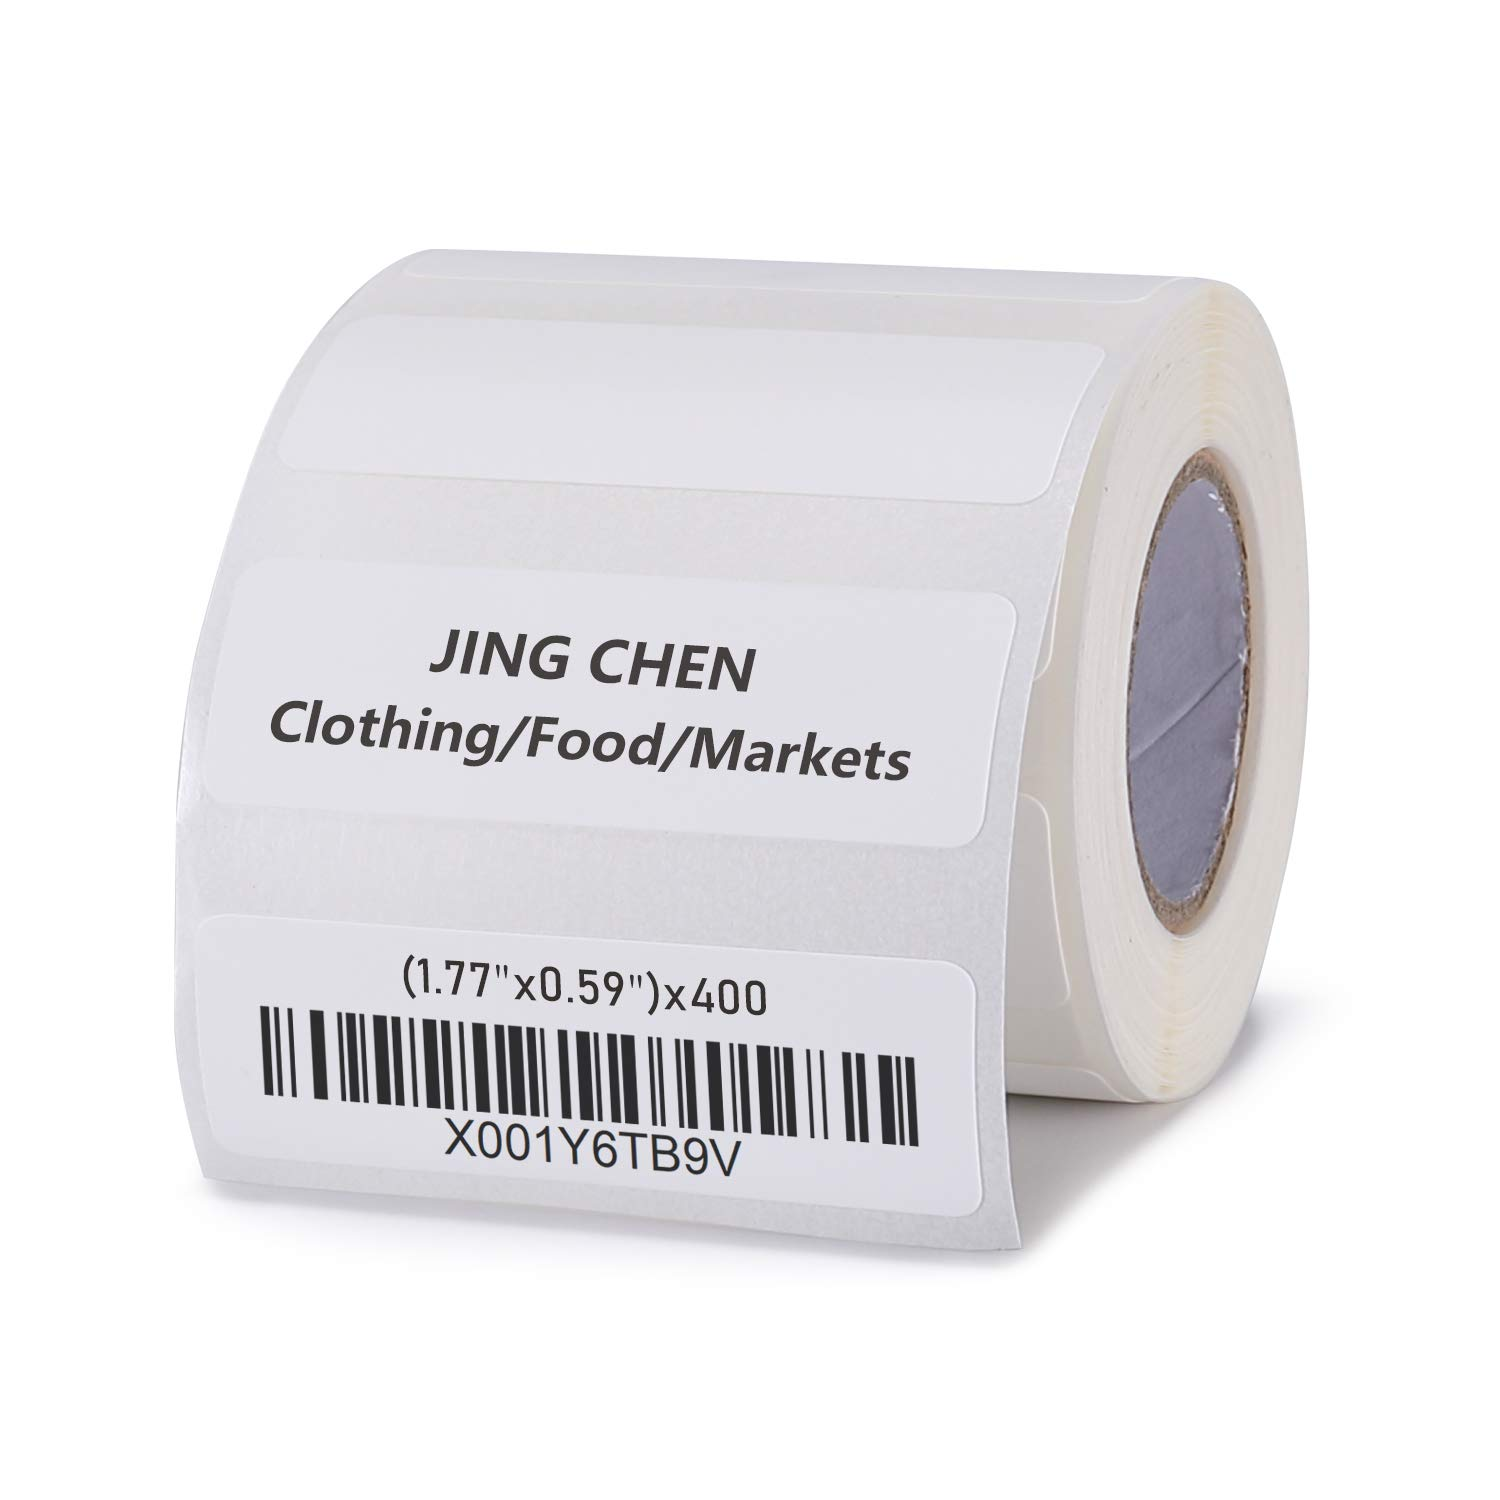 "JINGCHEN Thermal Label Paper, Print with B11/B3, Widely Used in Inventory/Food/Supermarkets/Clothing & Shoes & Hats, Label Printing, 1.77""x0.59"", 400 Labels/Roll"